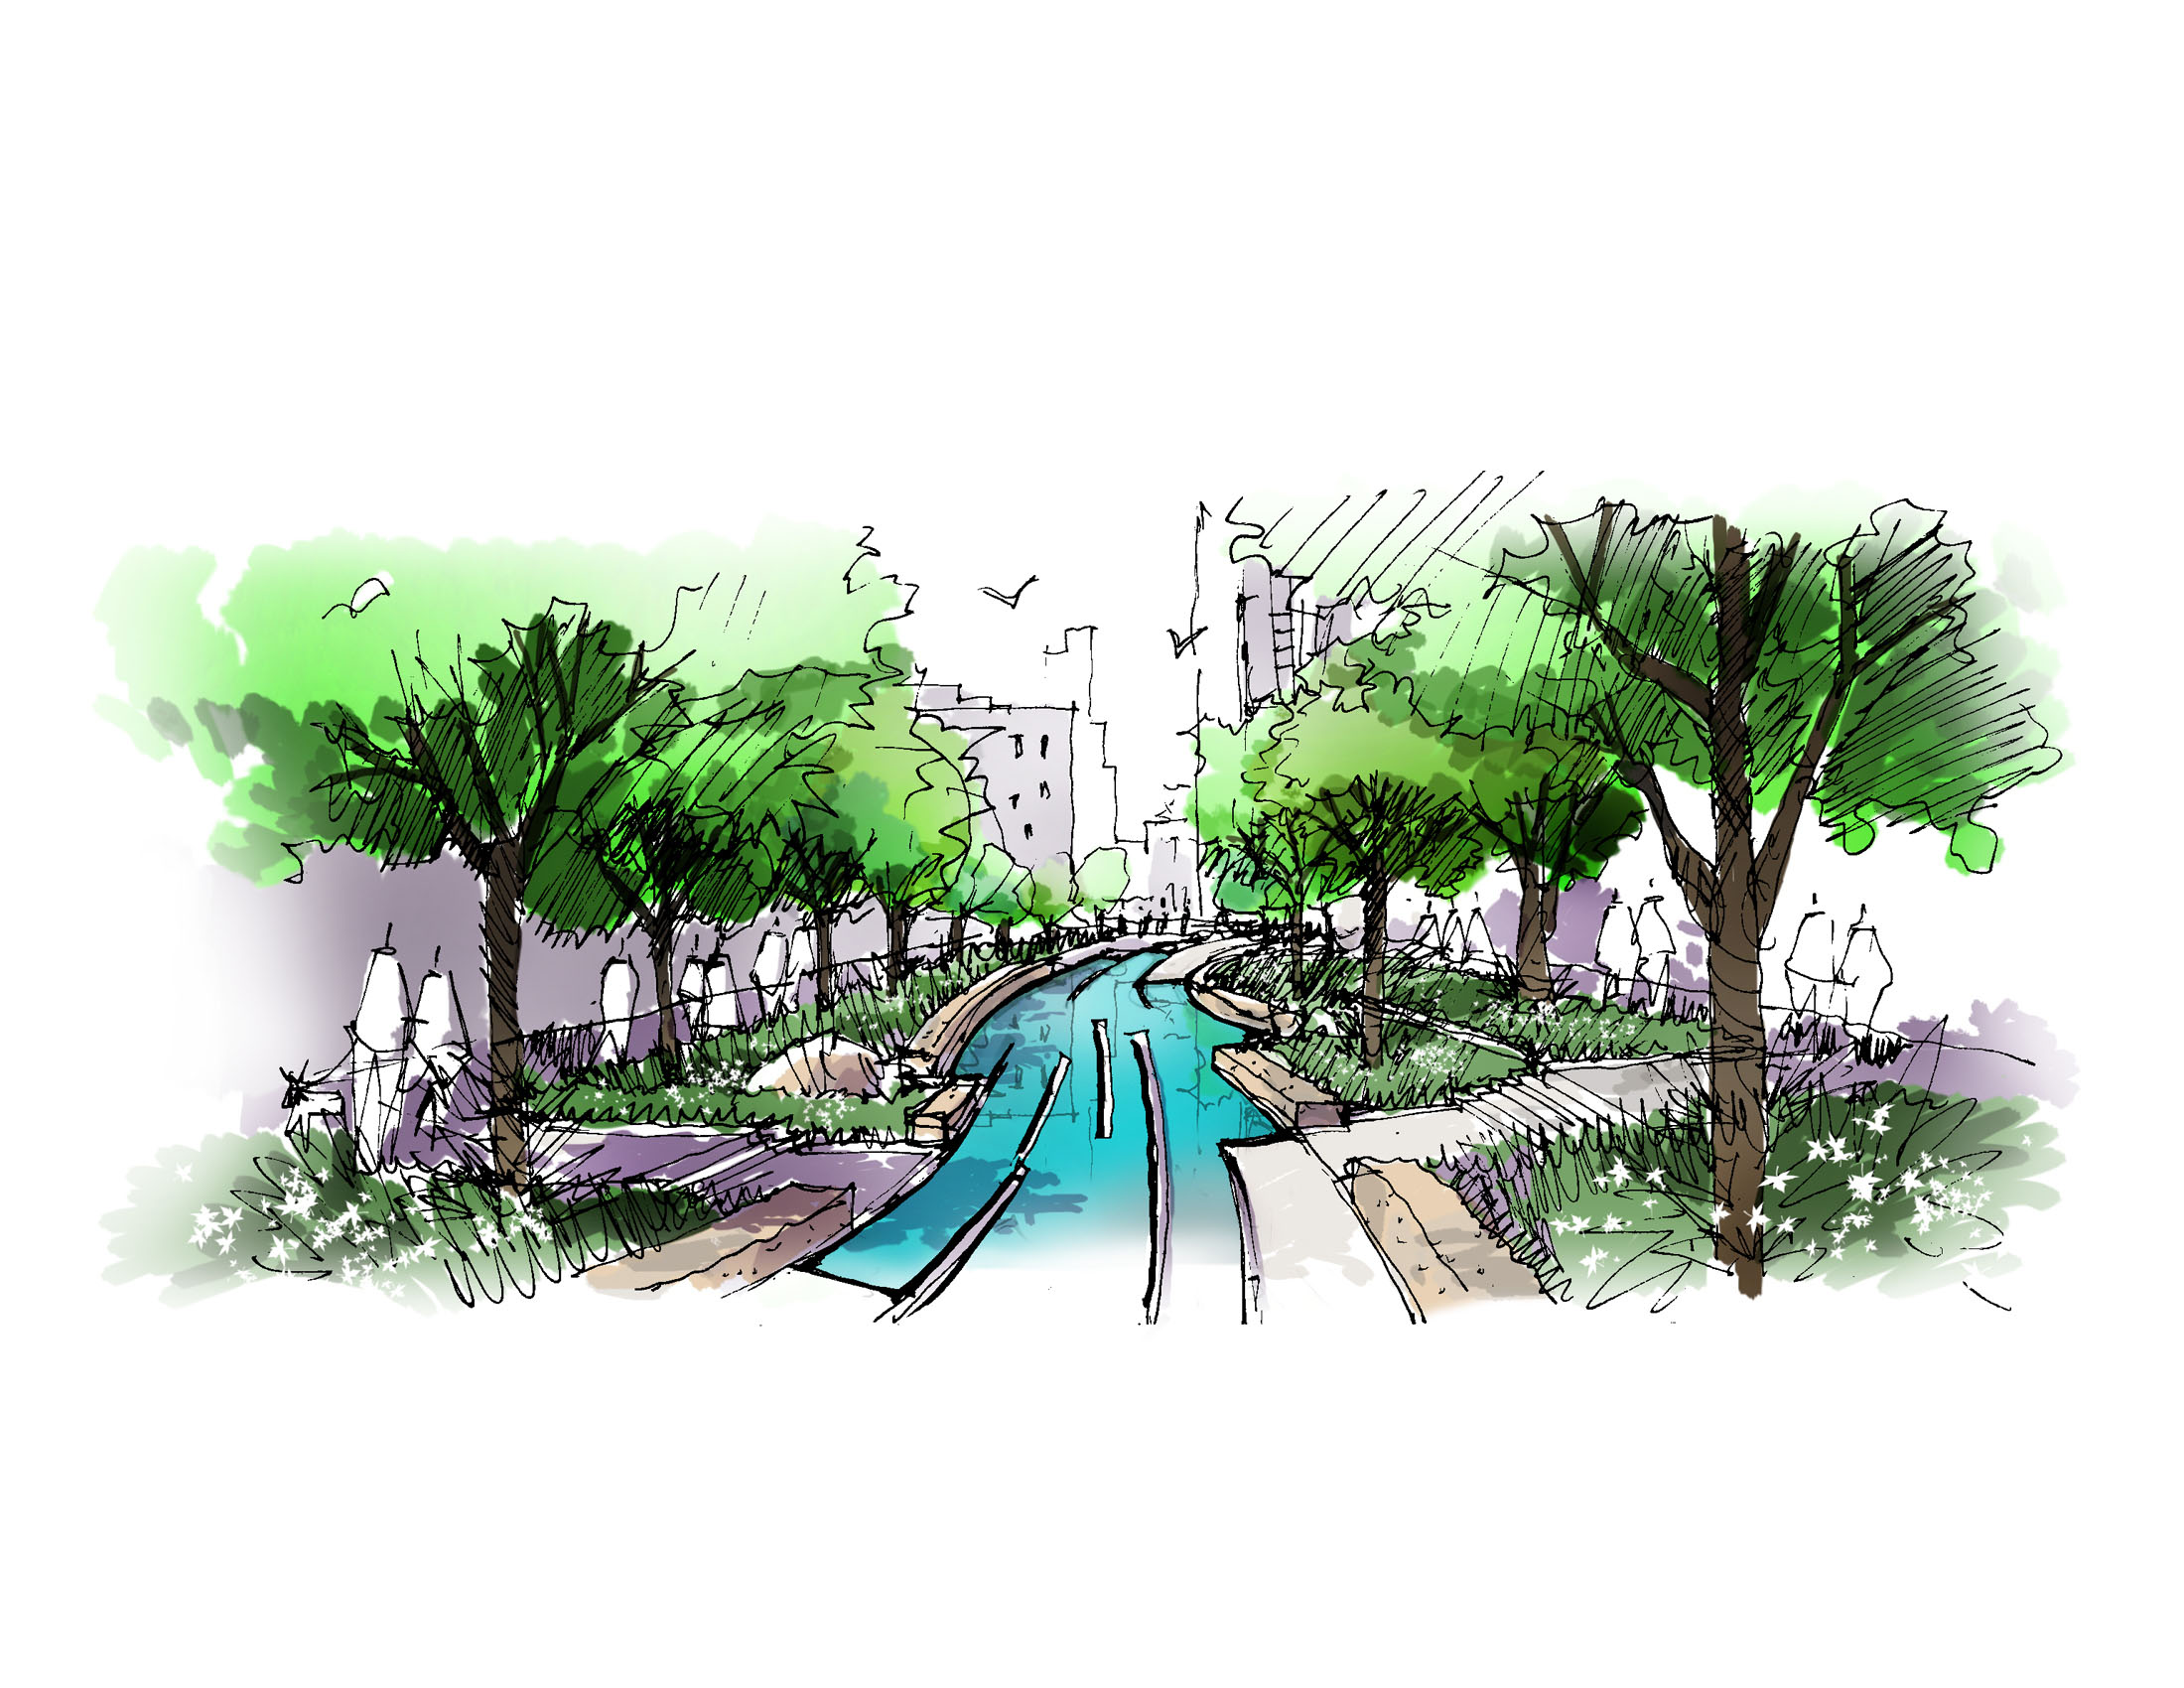 LANDSCAPE DESIGN CONCEPTS